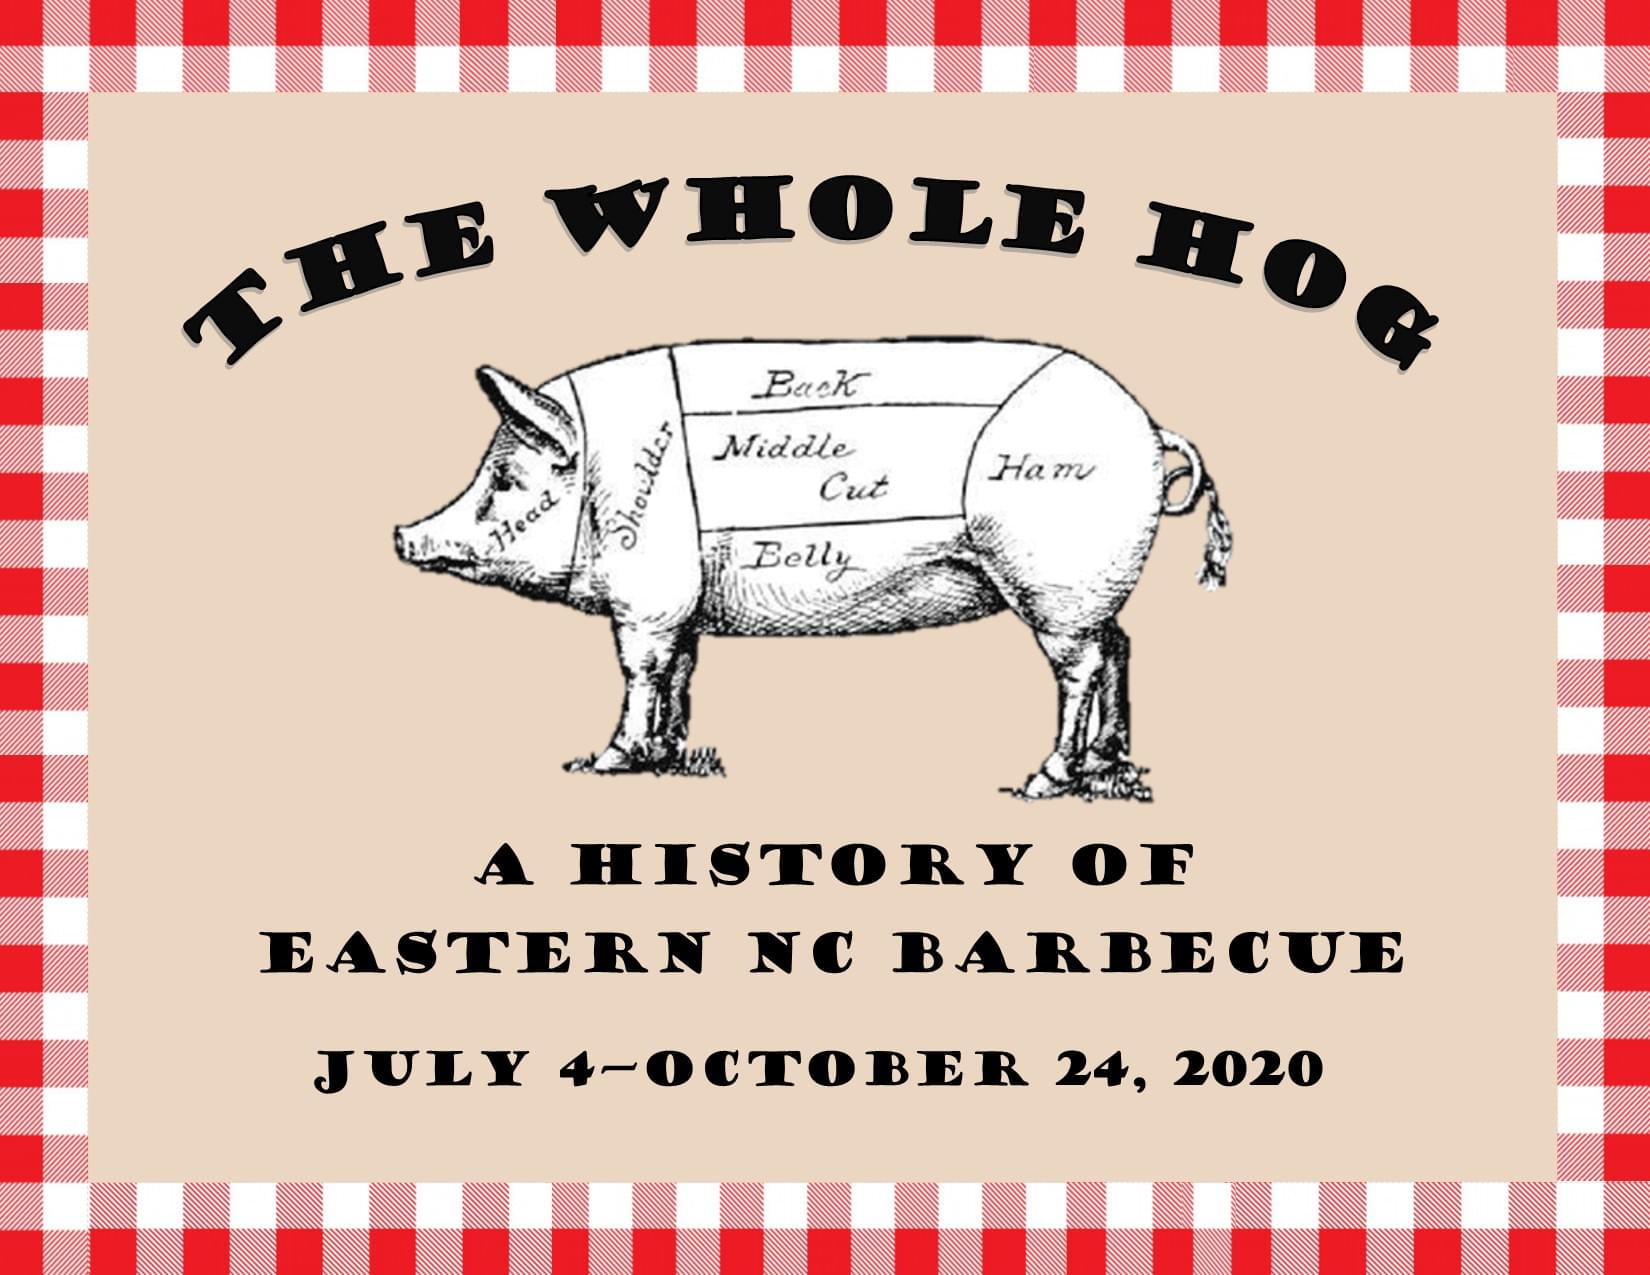 Museum's New Barbecue Exhibit Opens July 4